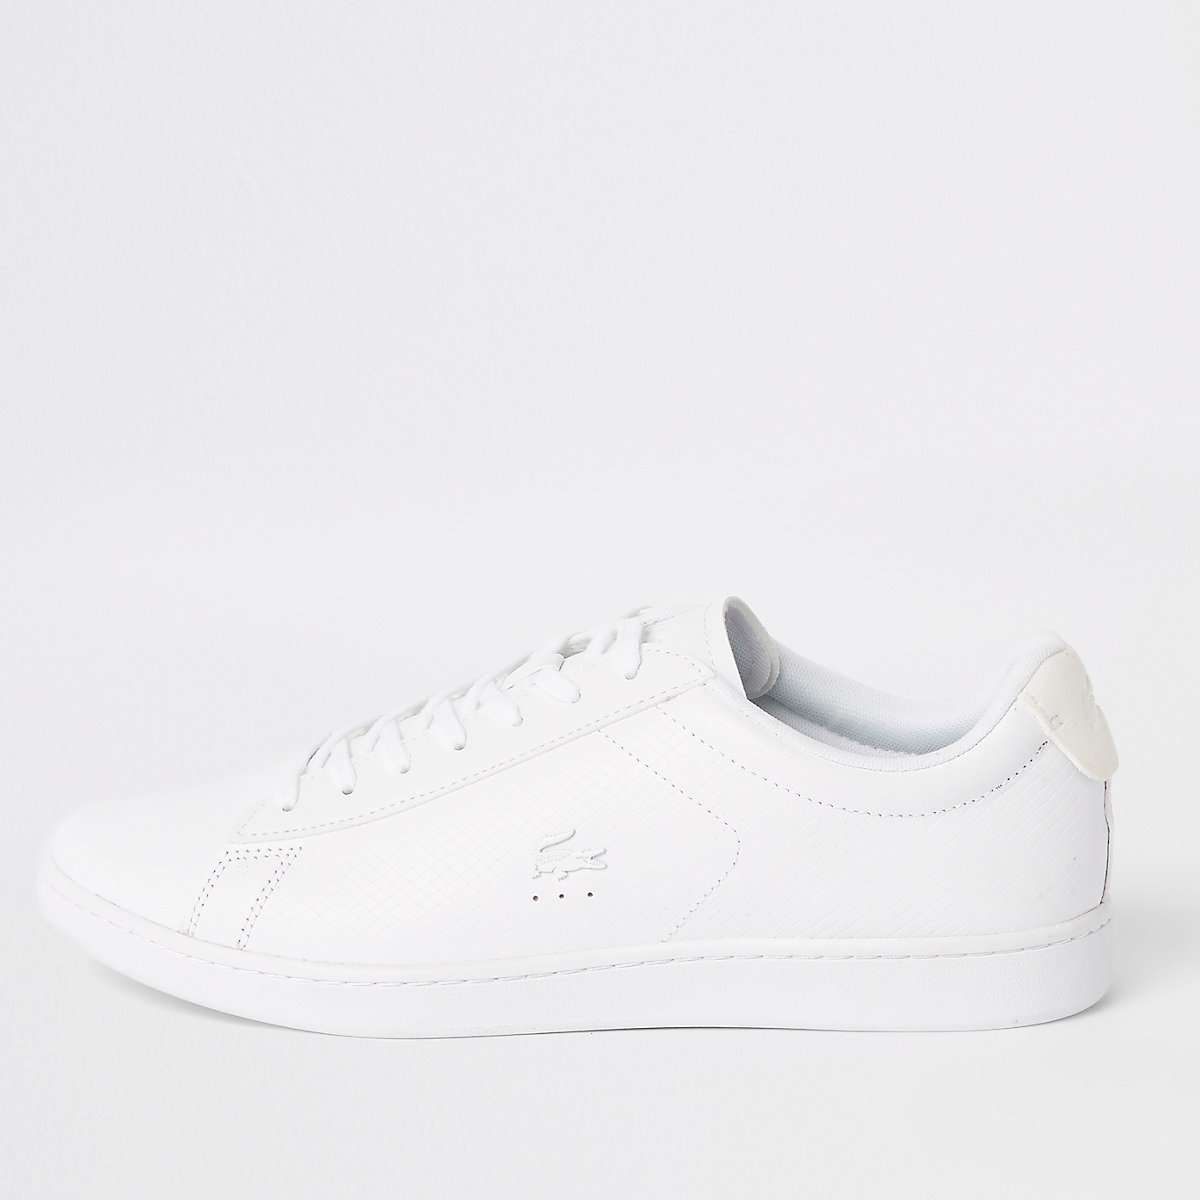 Lacoste white leather lace-up sneakers